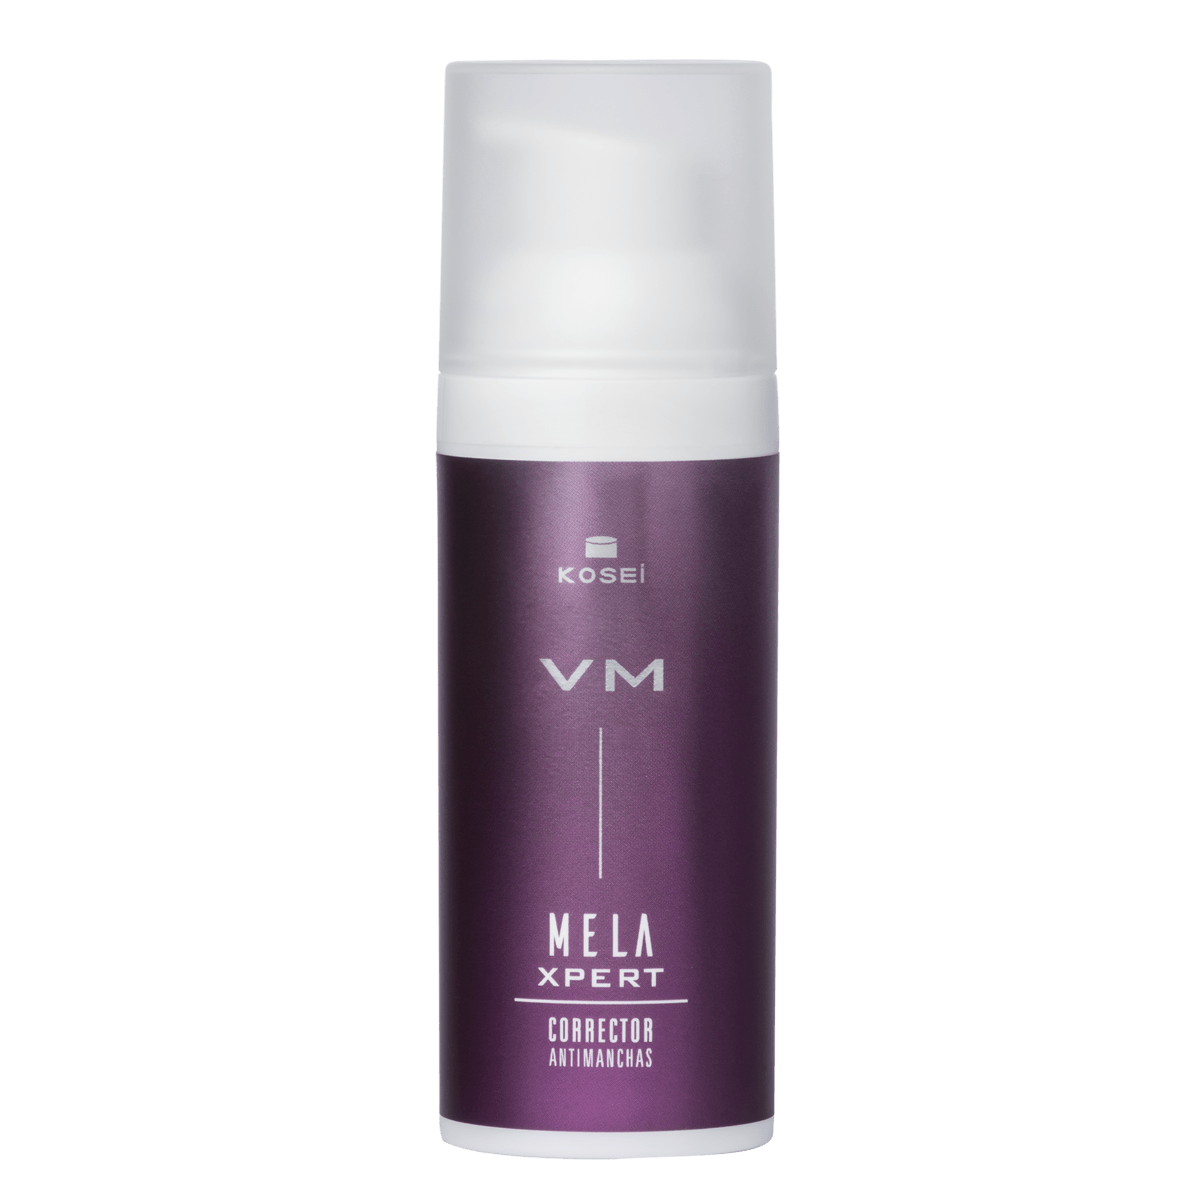 VM PREMIUM CELLS serum antiedad